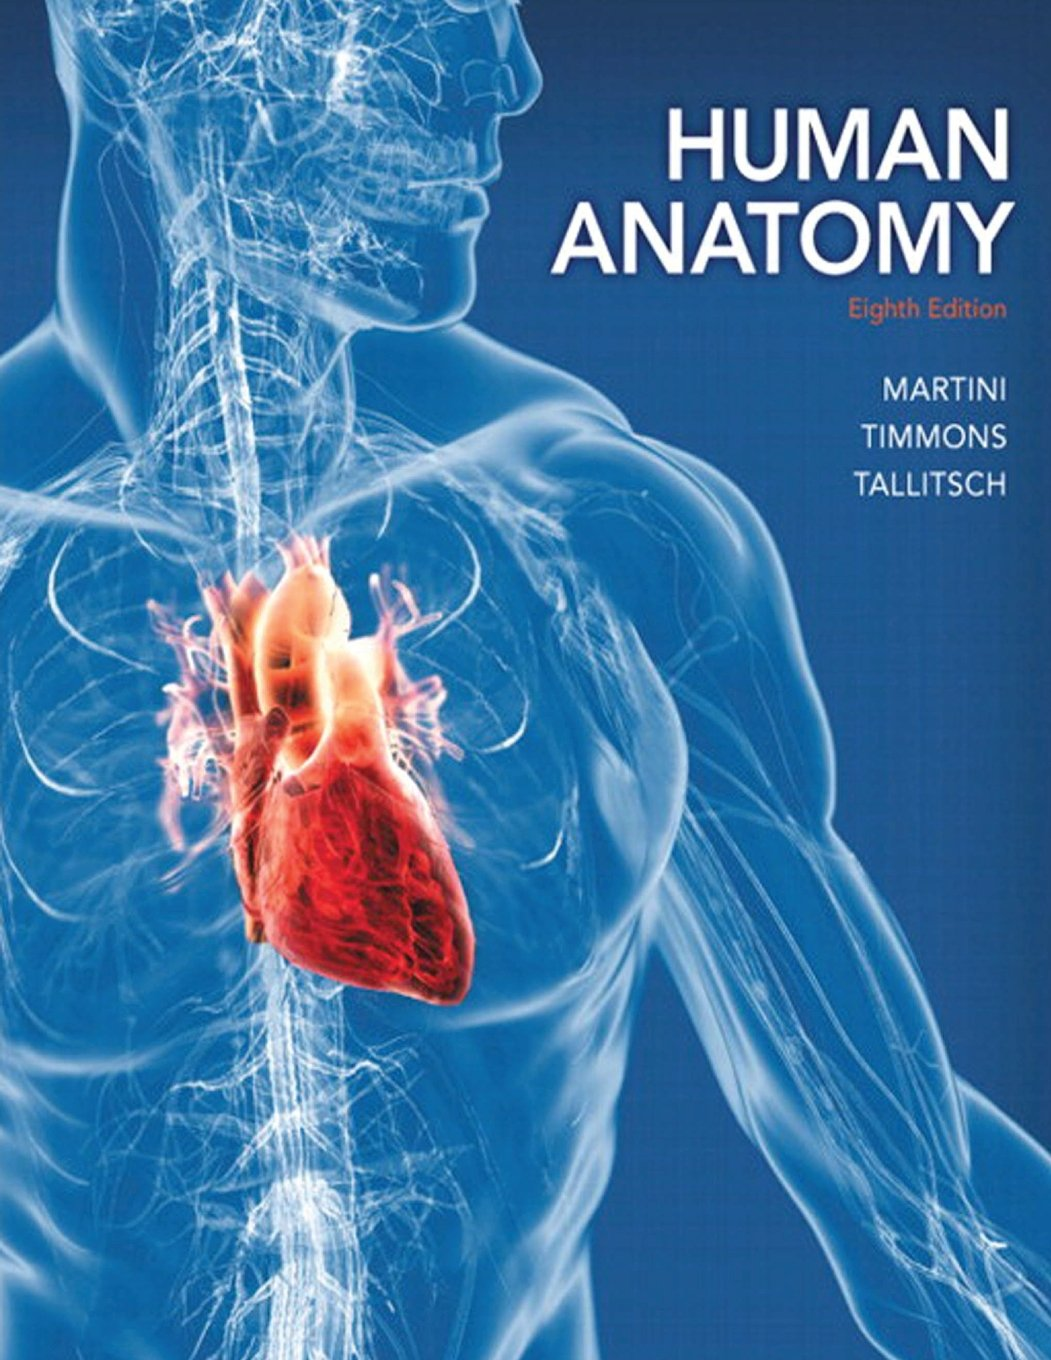 Human Anatomy: Amazon.co.uk: Frederic H. Martini, Robert B ...